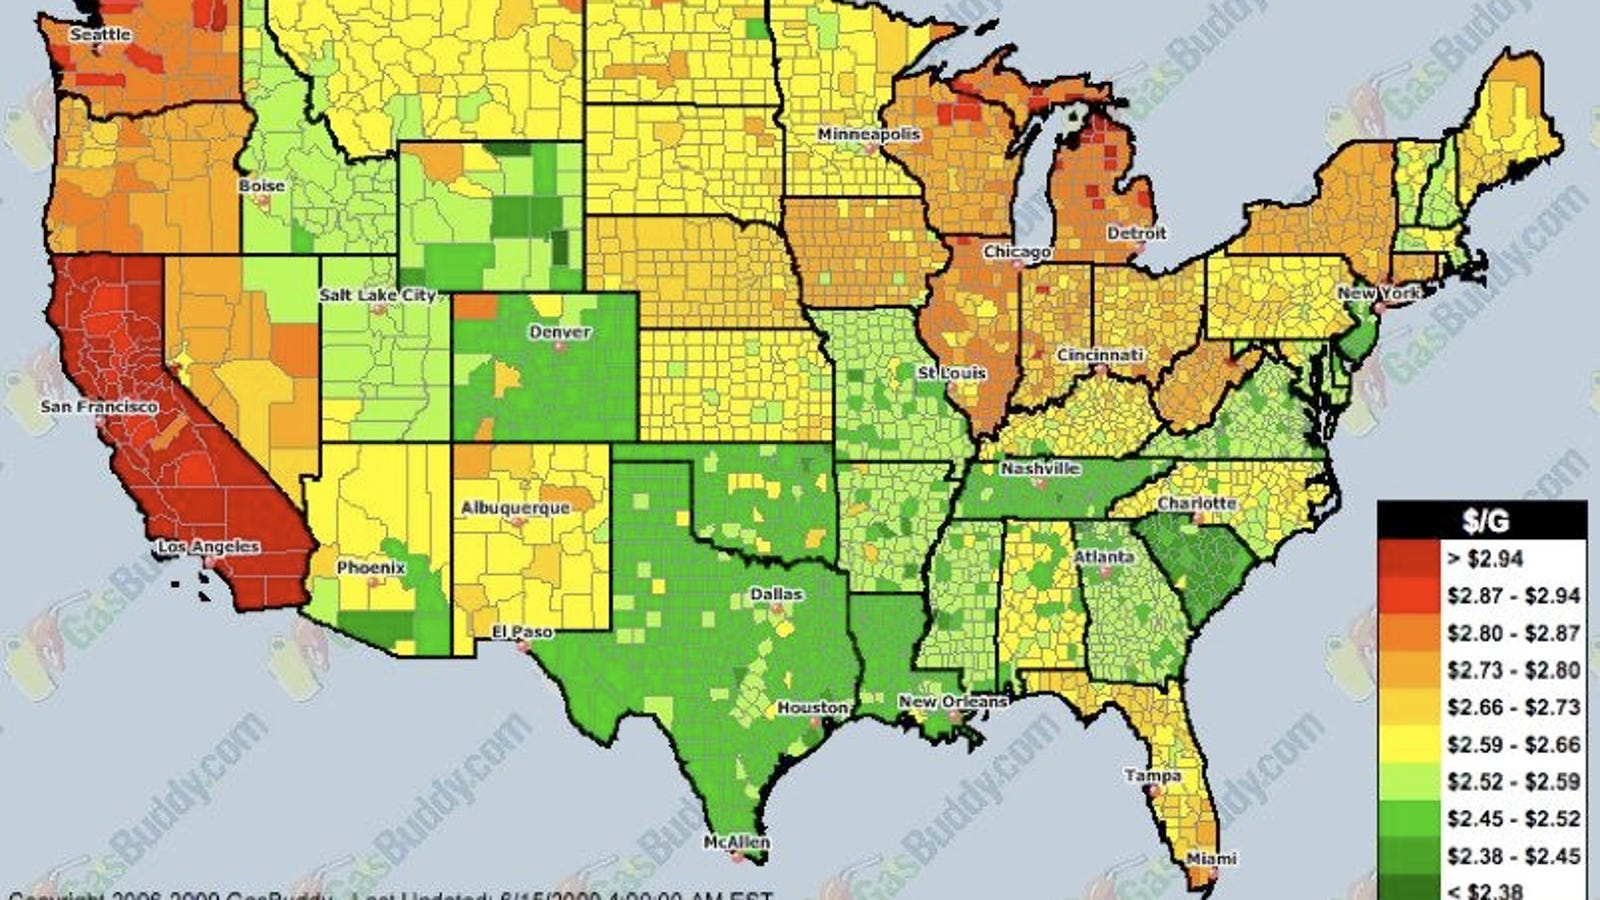 The United States Map Of Higher Gas Prices on chicago politics, chicago natural gas map, chicago obituaries, chicago economy map, chicago homicide map, gas price heat map, chicago heat map, chicago driving map, chicago food map, chicago memorial day map, chicago restaurants map, chicago travel map, chicago traffic map, chicago terrorism, chicago crime map, chicago energy, gasoline price heat map, chicago water map, chicago environment, chicago california map,